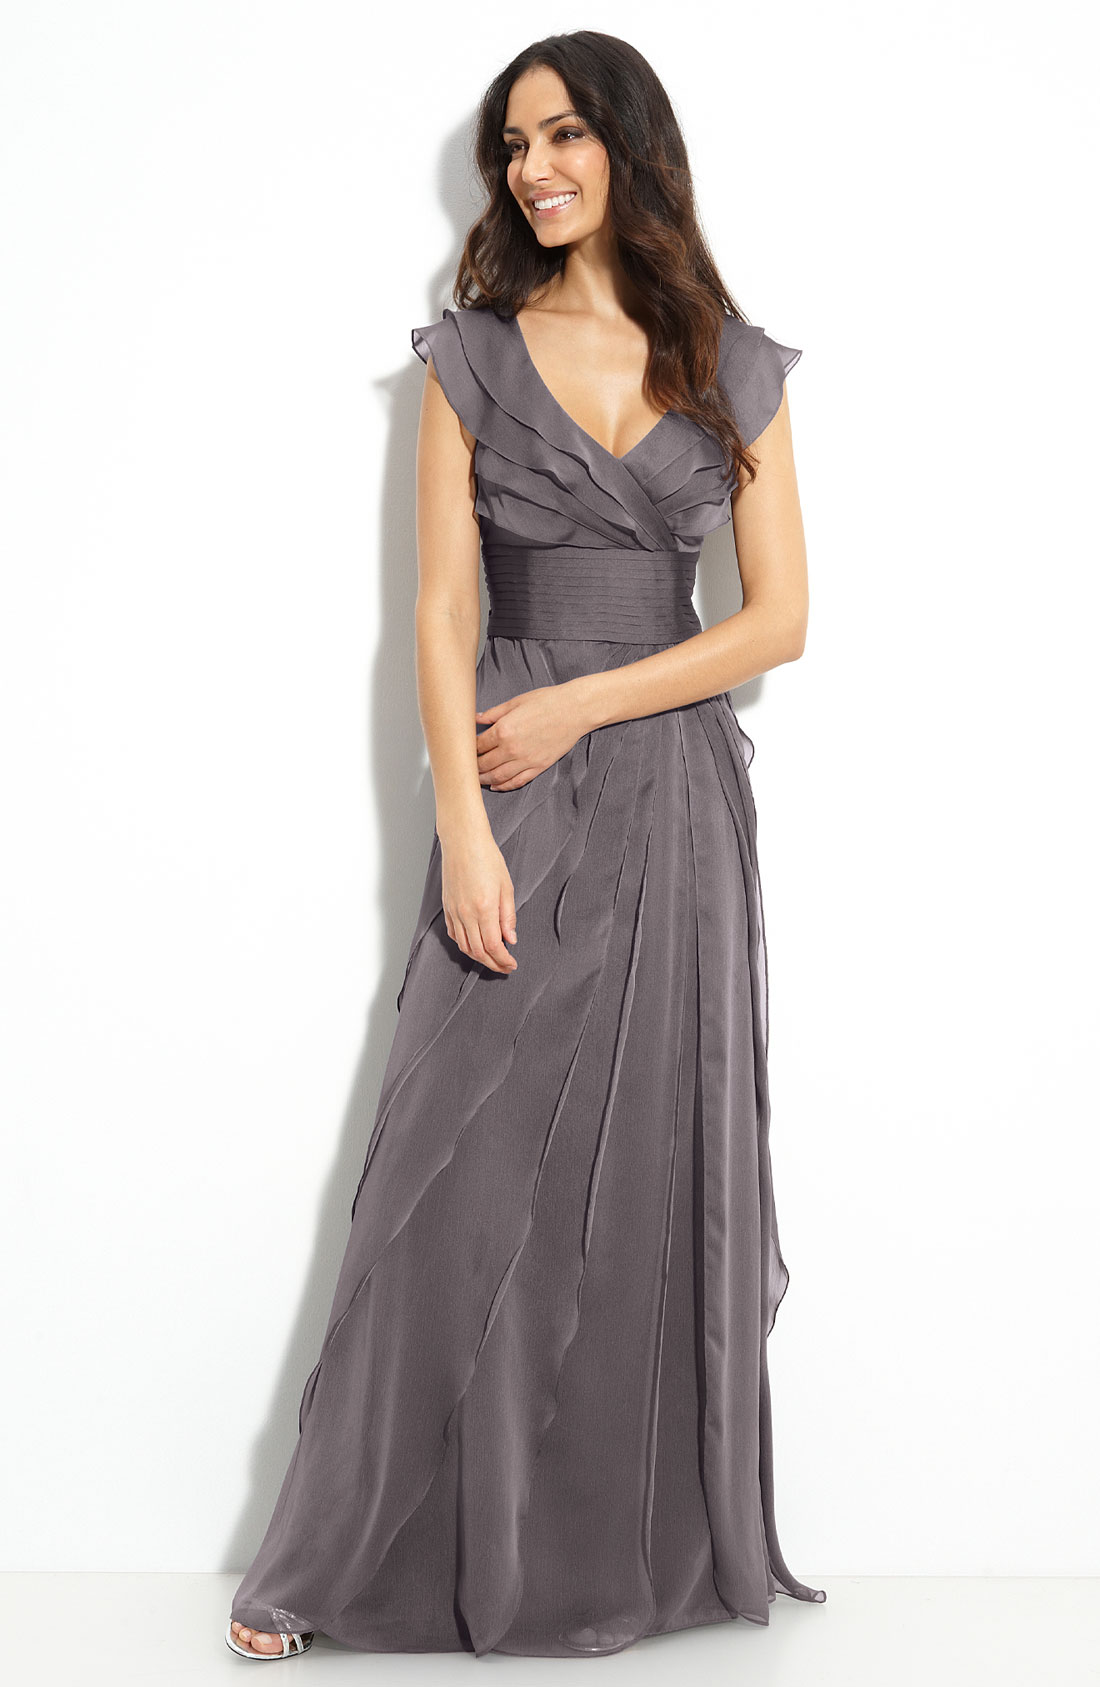 198 Sz 12P Adrianna Papell Tiered Chiffon Gown Gray